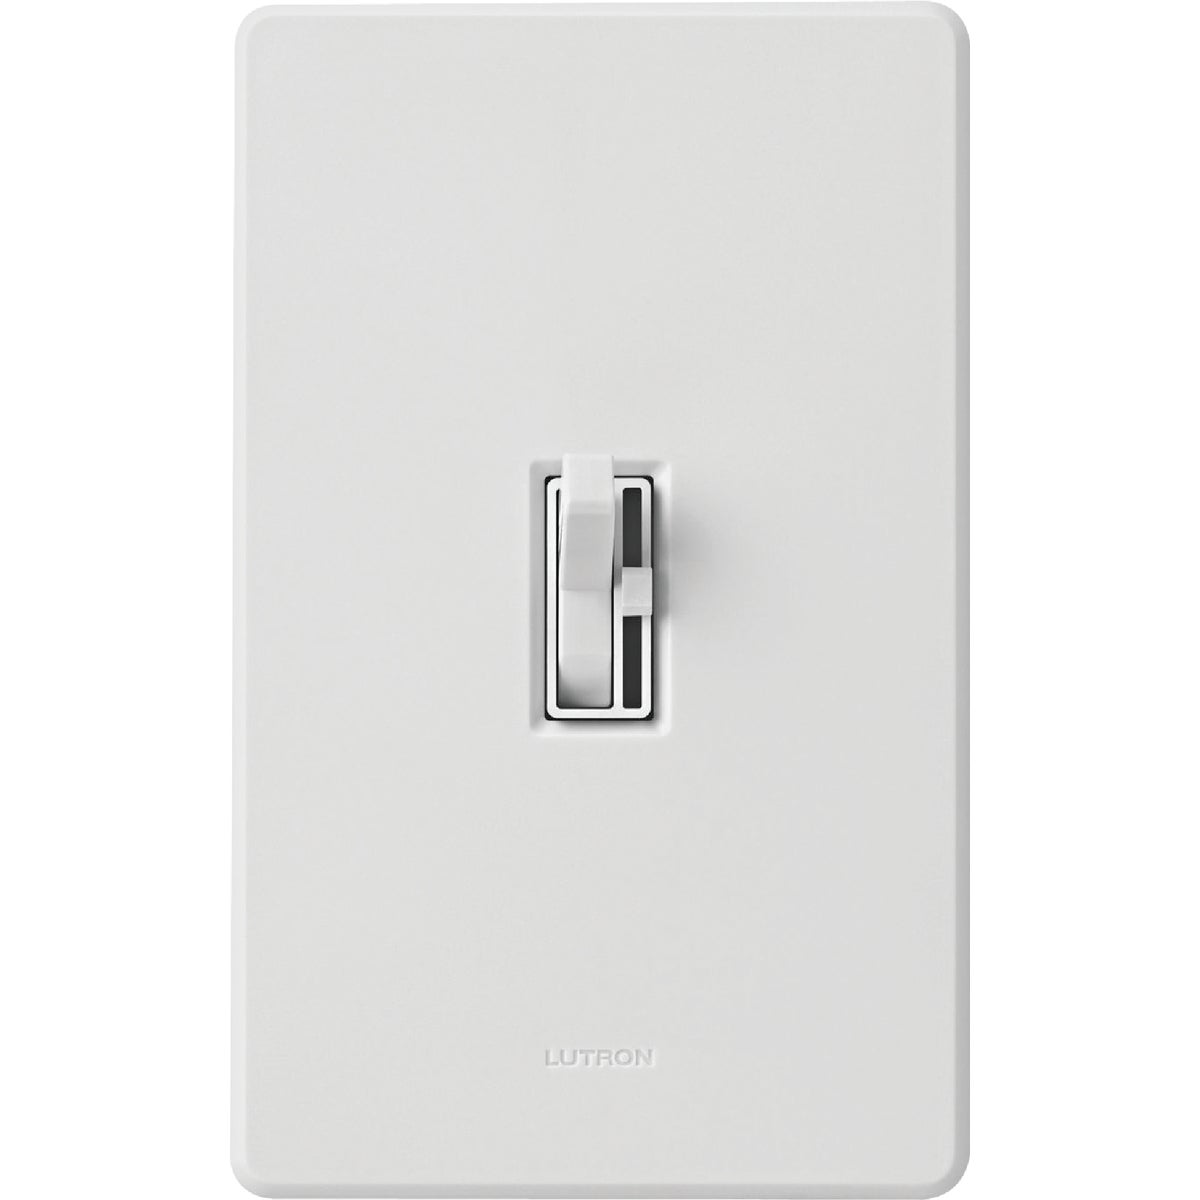 600W ECO DIMMER